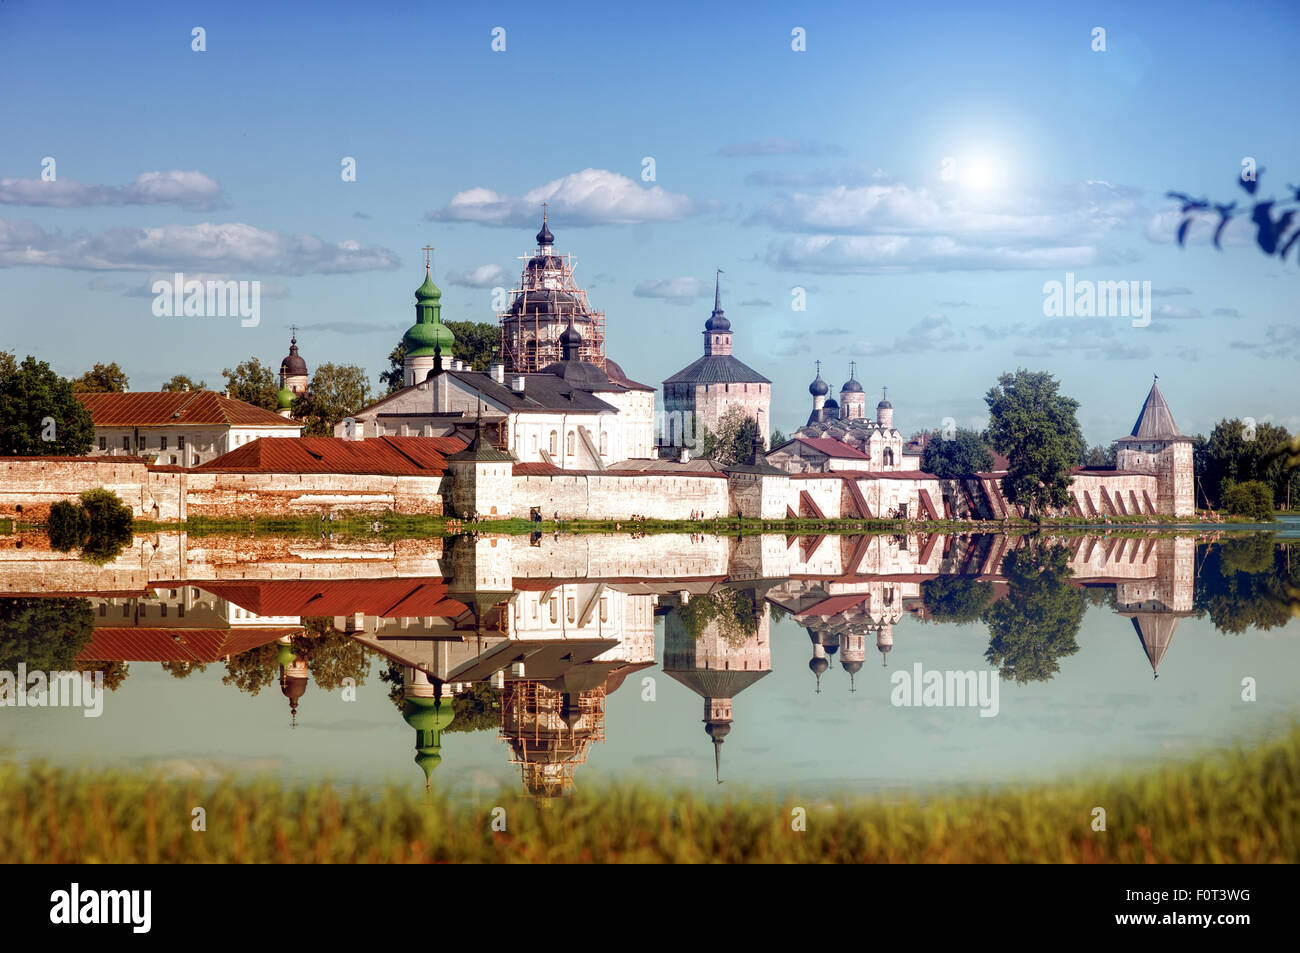 lakeside wall and tower of Kirillo-Belozersk Monastery - Stock Image